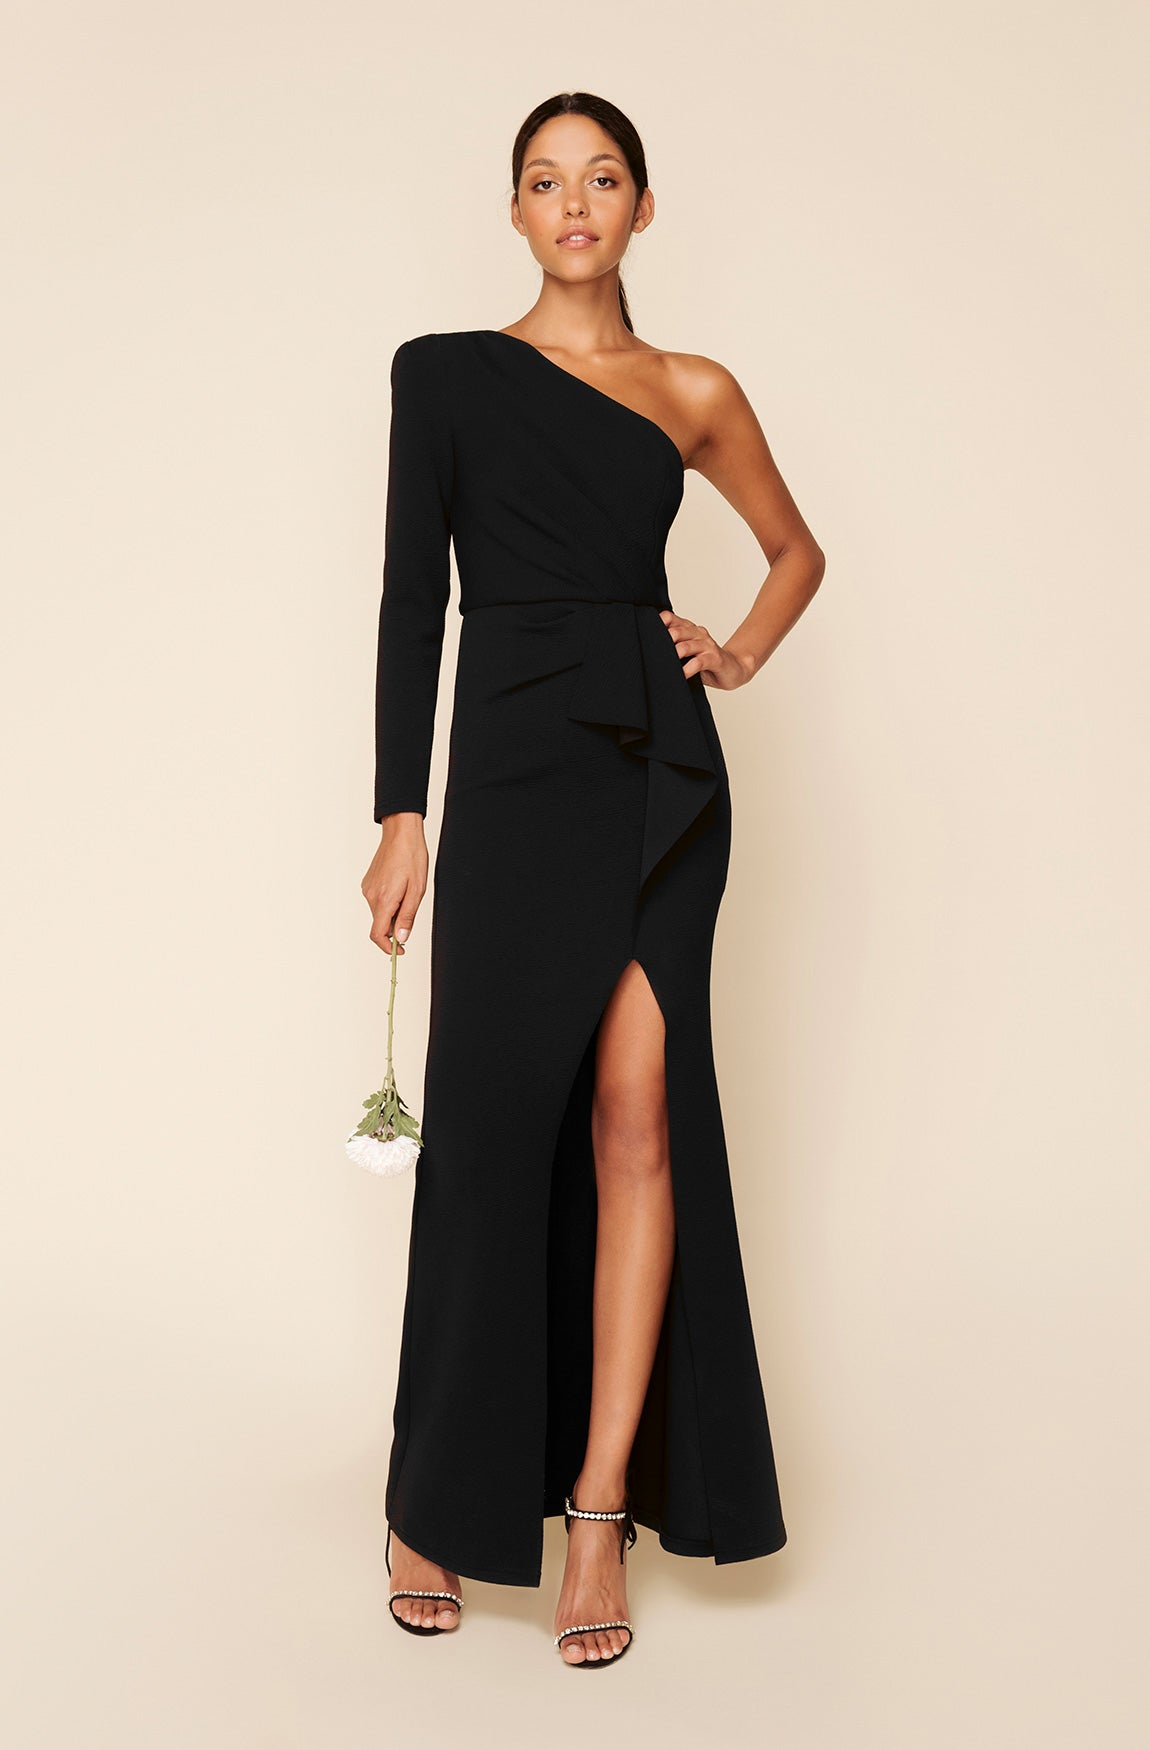 VENICE FORMAL GOWN